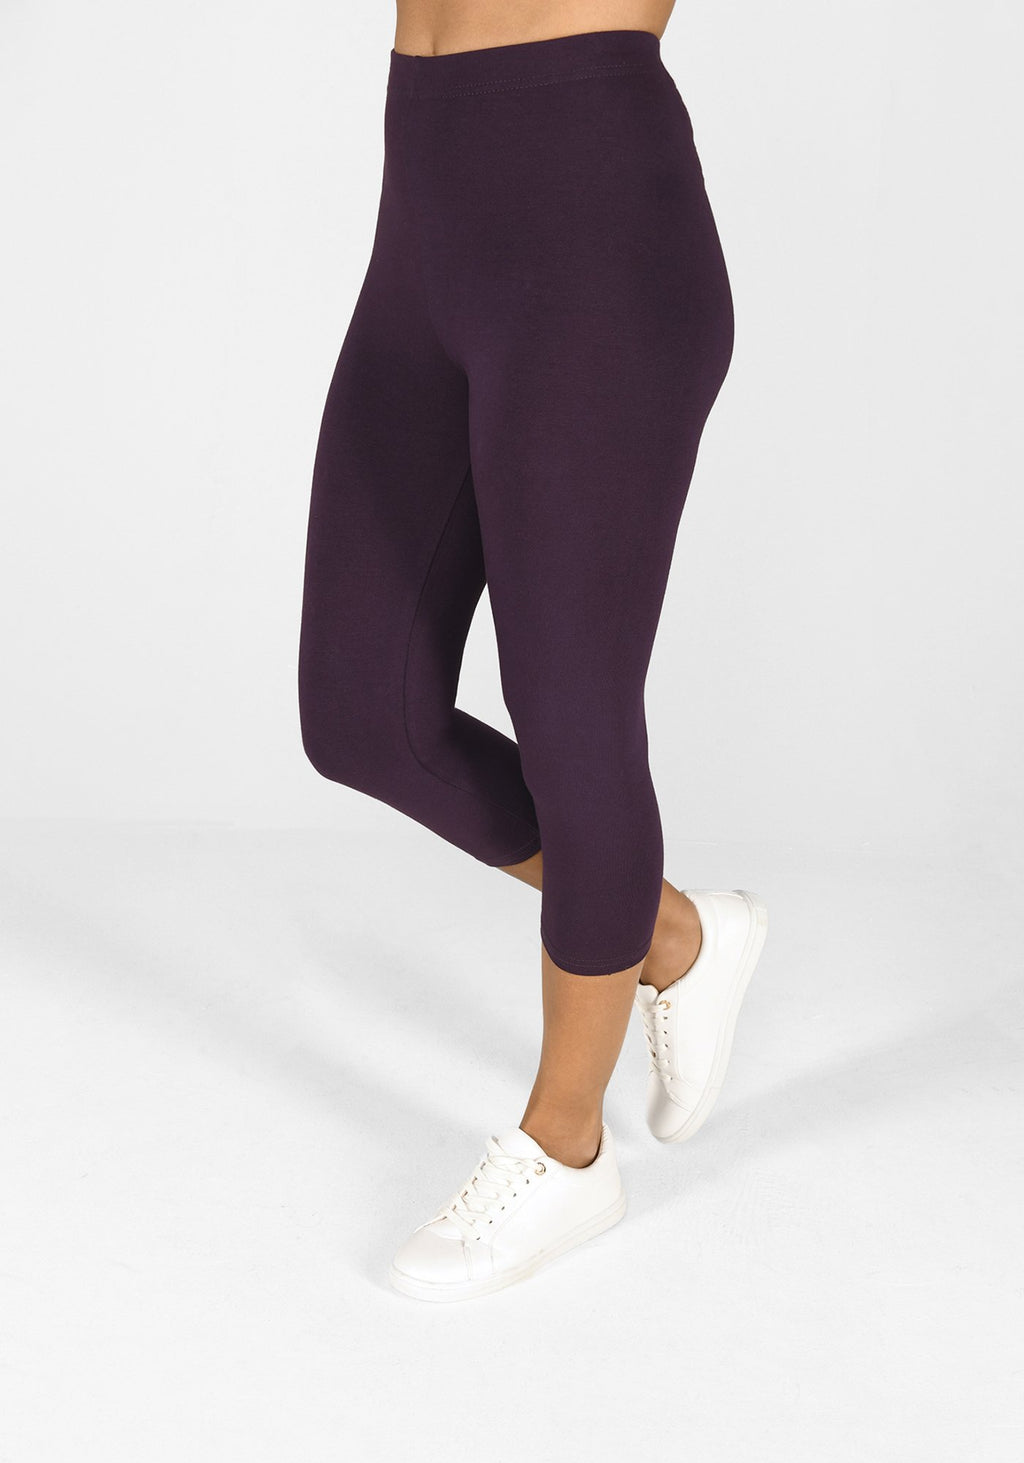 acai purple cropped classic leggings 1